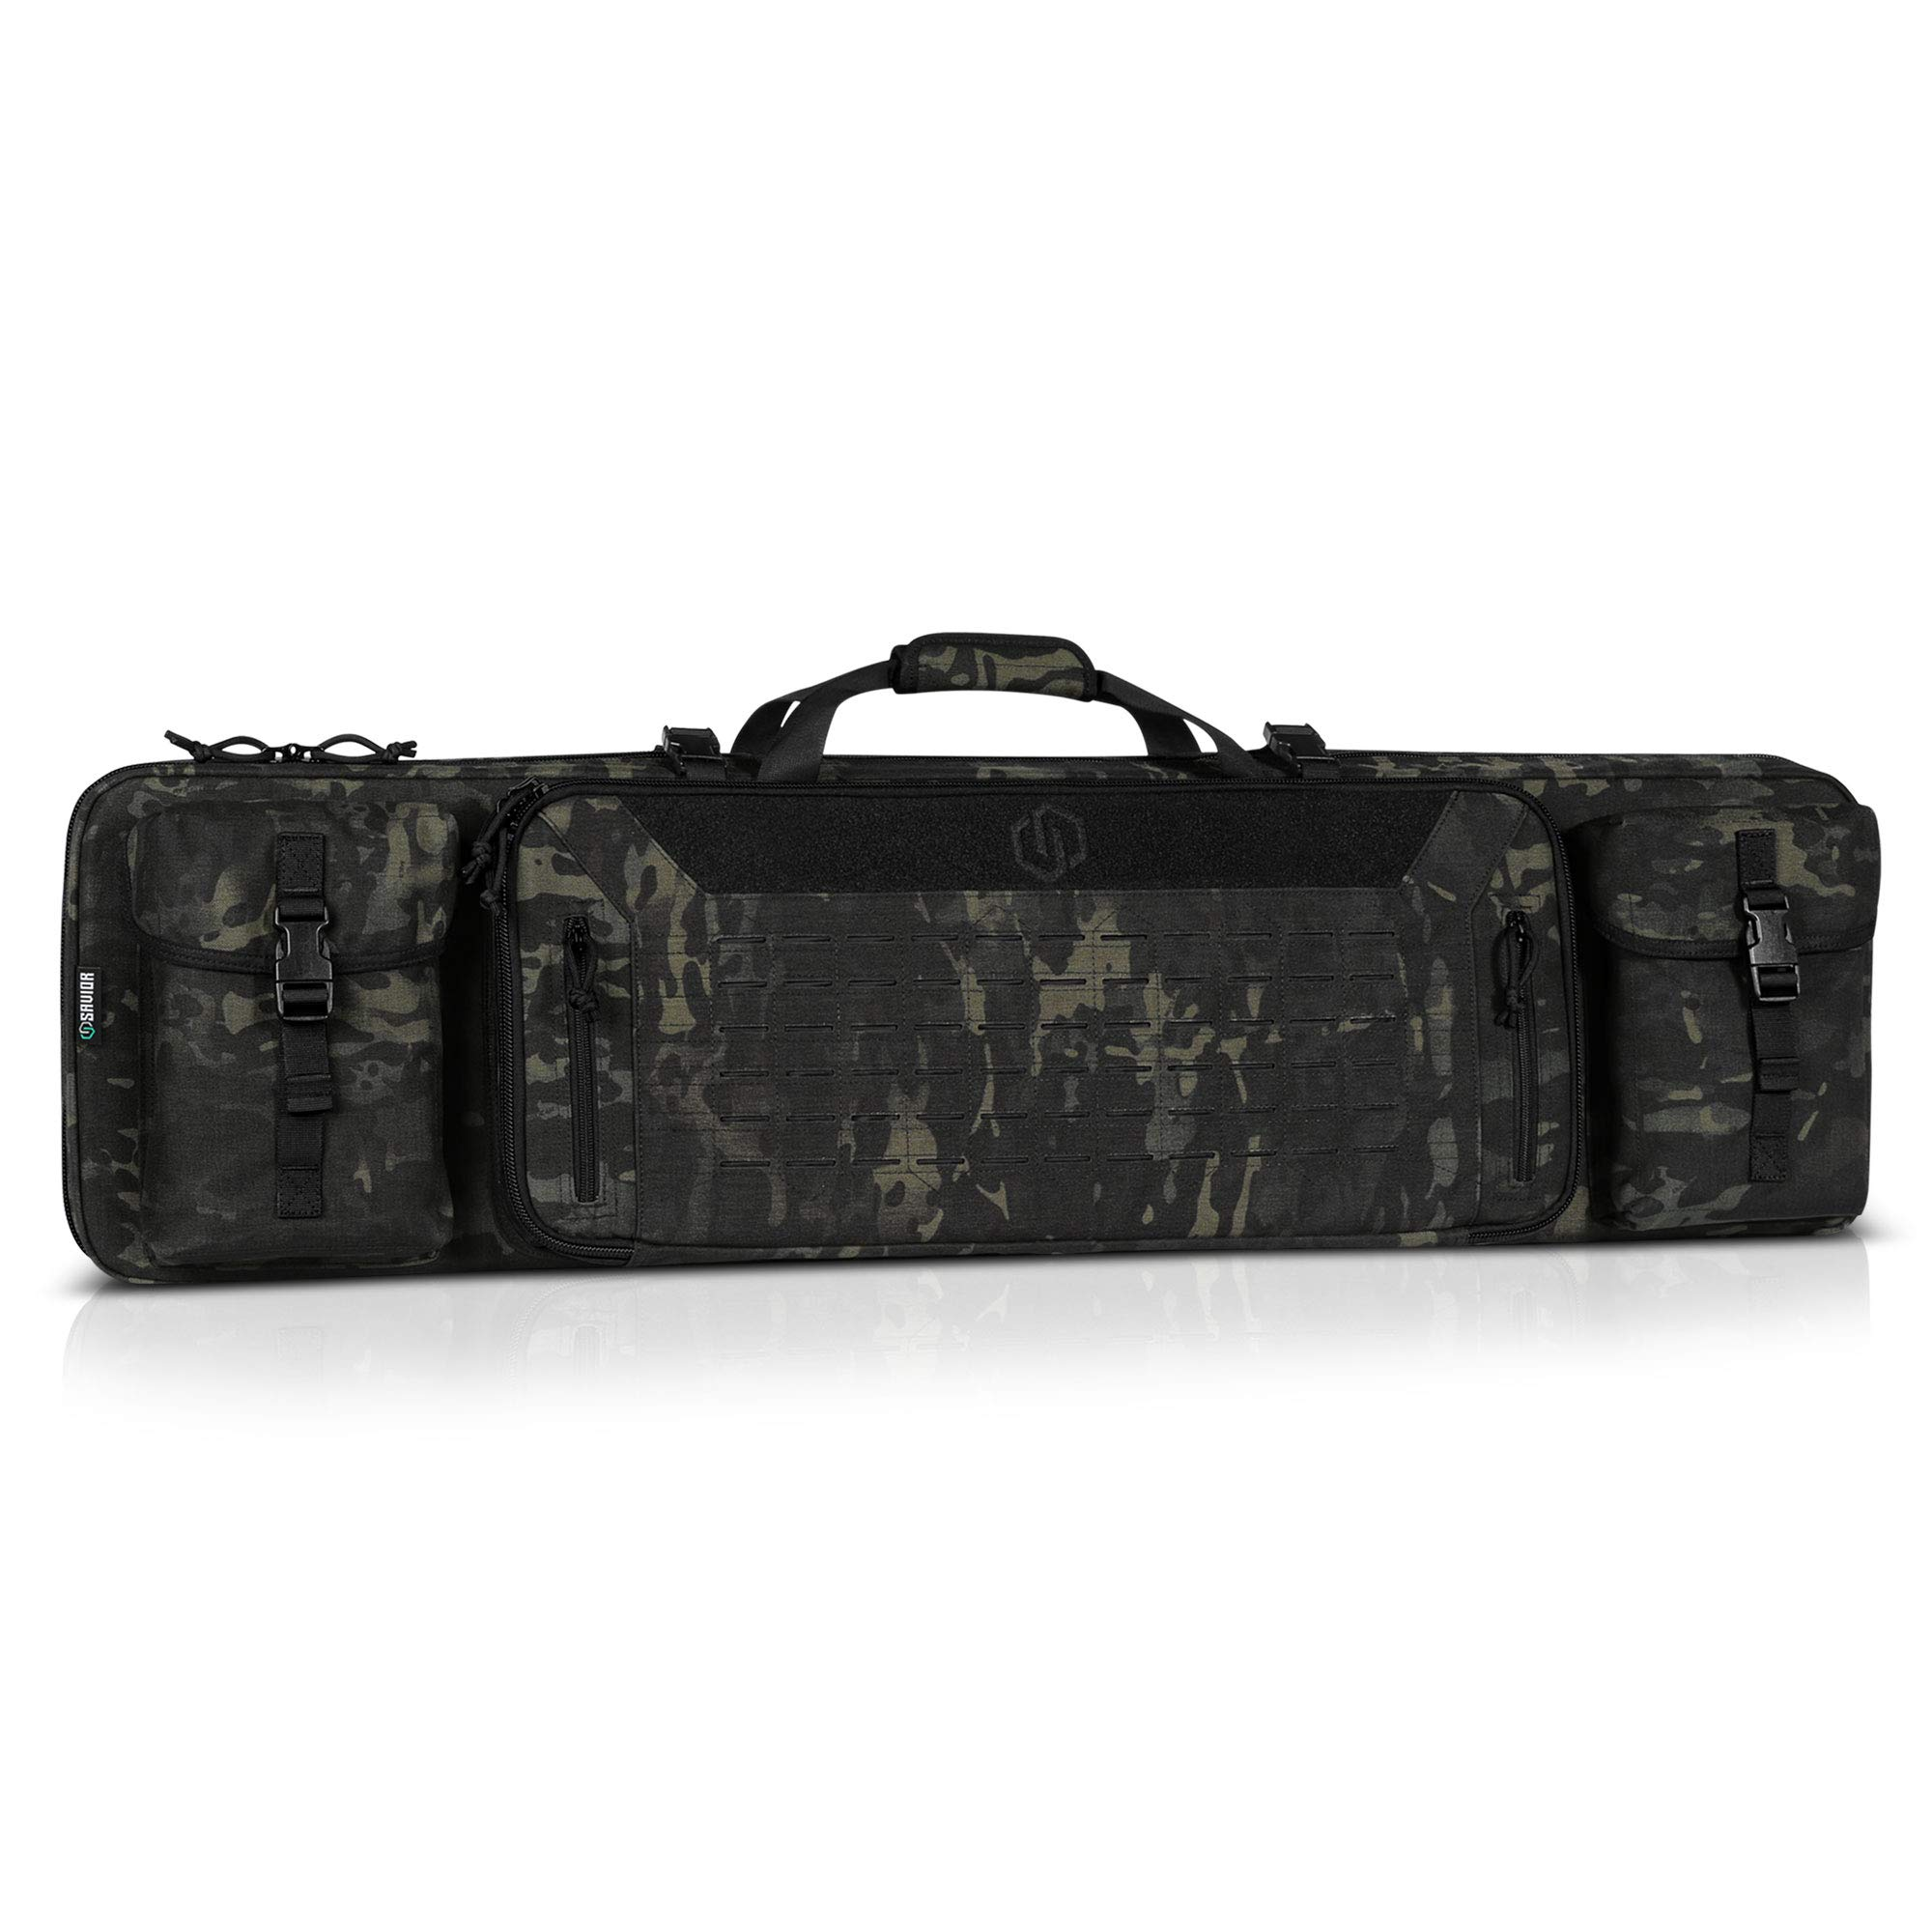 Savior Equipment 46'' Urban Warfare Multicam Black Tactical Double Carbine Long Rifle Bag Firearm Gun Case w/Removable Backpack Strap - 1000D Cordura Nylon Fabric, UTX Buckles, YKK Zippers by Savior Equipment